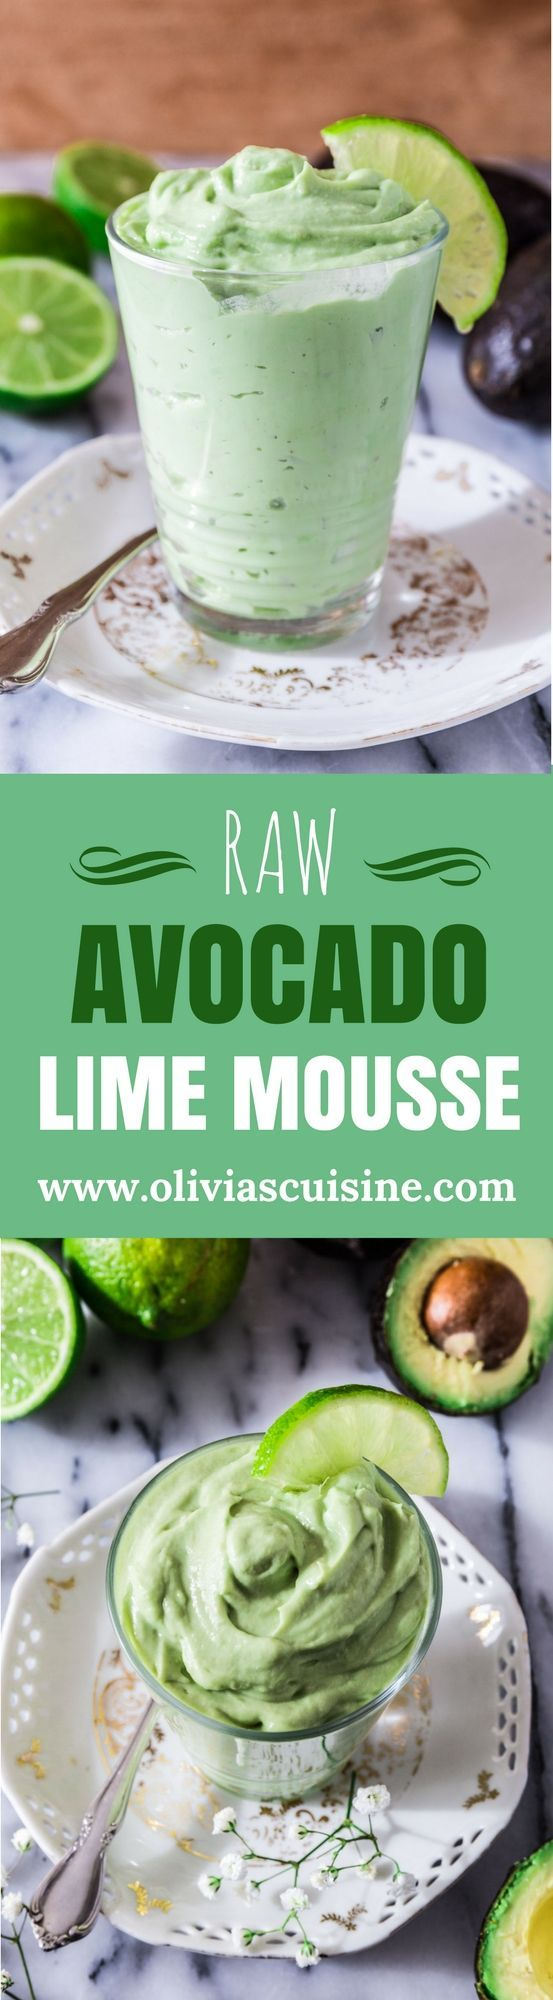 Raw Avocado Lime Mousse | www.oliviascuisine.com | Looking for a guilt free dessert? This Raw Avocado Lime Mousse will do the trick. Not only delicious but also heart check certified! ❤️️ Oh, and made with only 3 ingredients. What could be better than that? (Recipe by @oliviascuisine in partnership with @hassavocados.) #addavocado #LoveOneToday